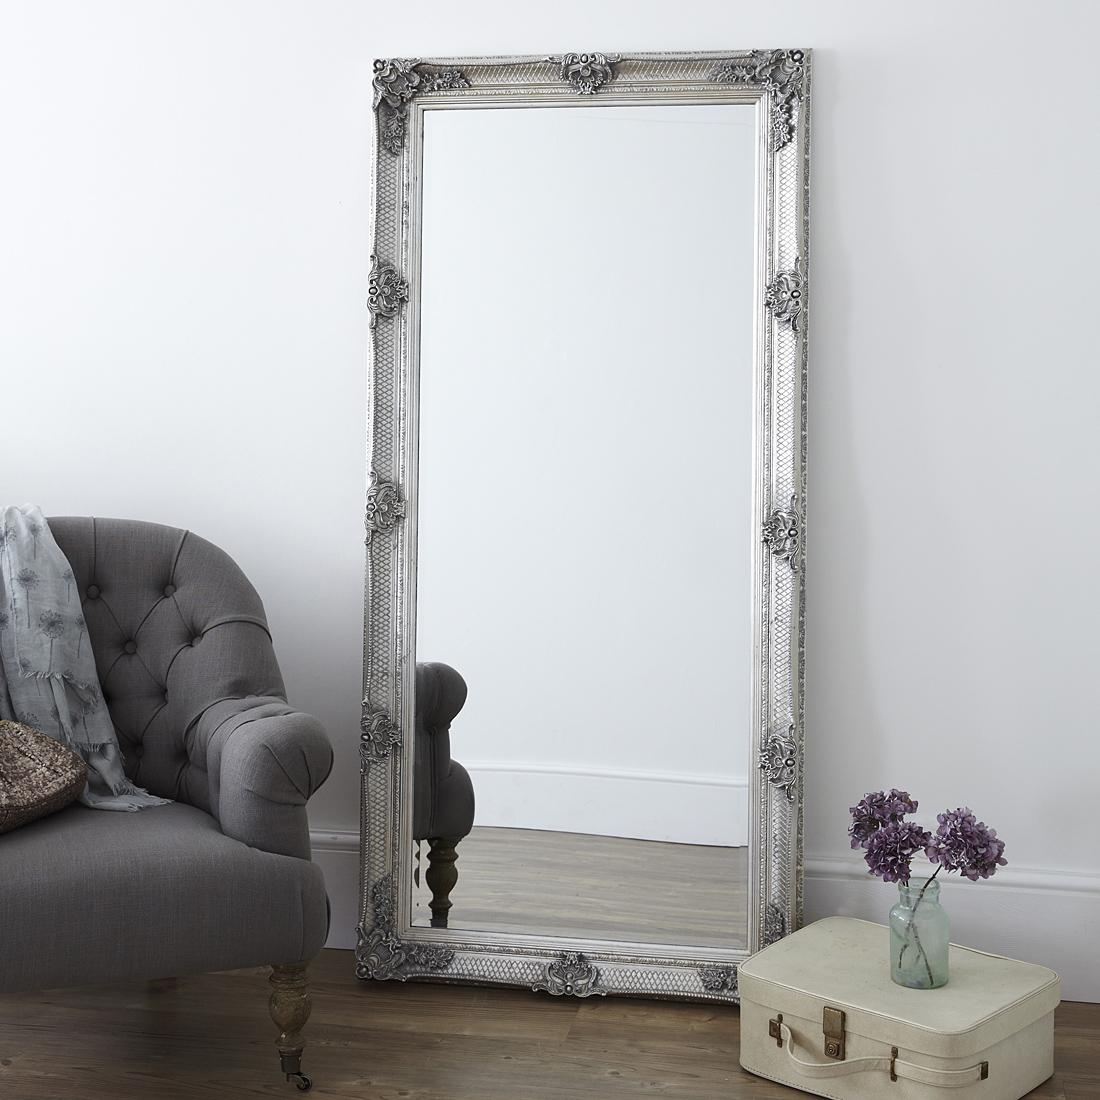 Decorative Antique Silver Full Length Mirror – Primrose & Plum For Full Length Ornate Mirror (Image 6 of 20)